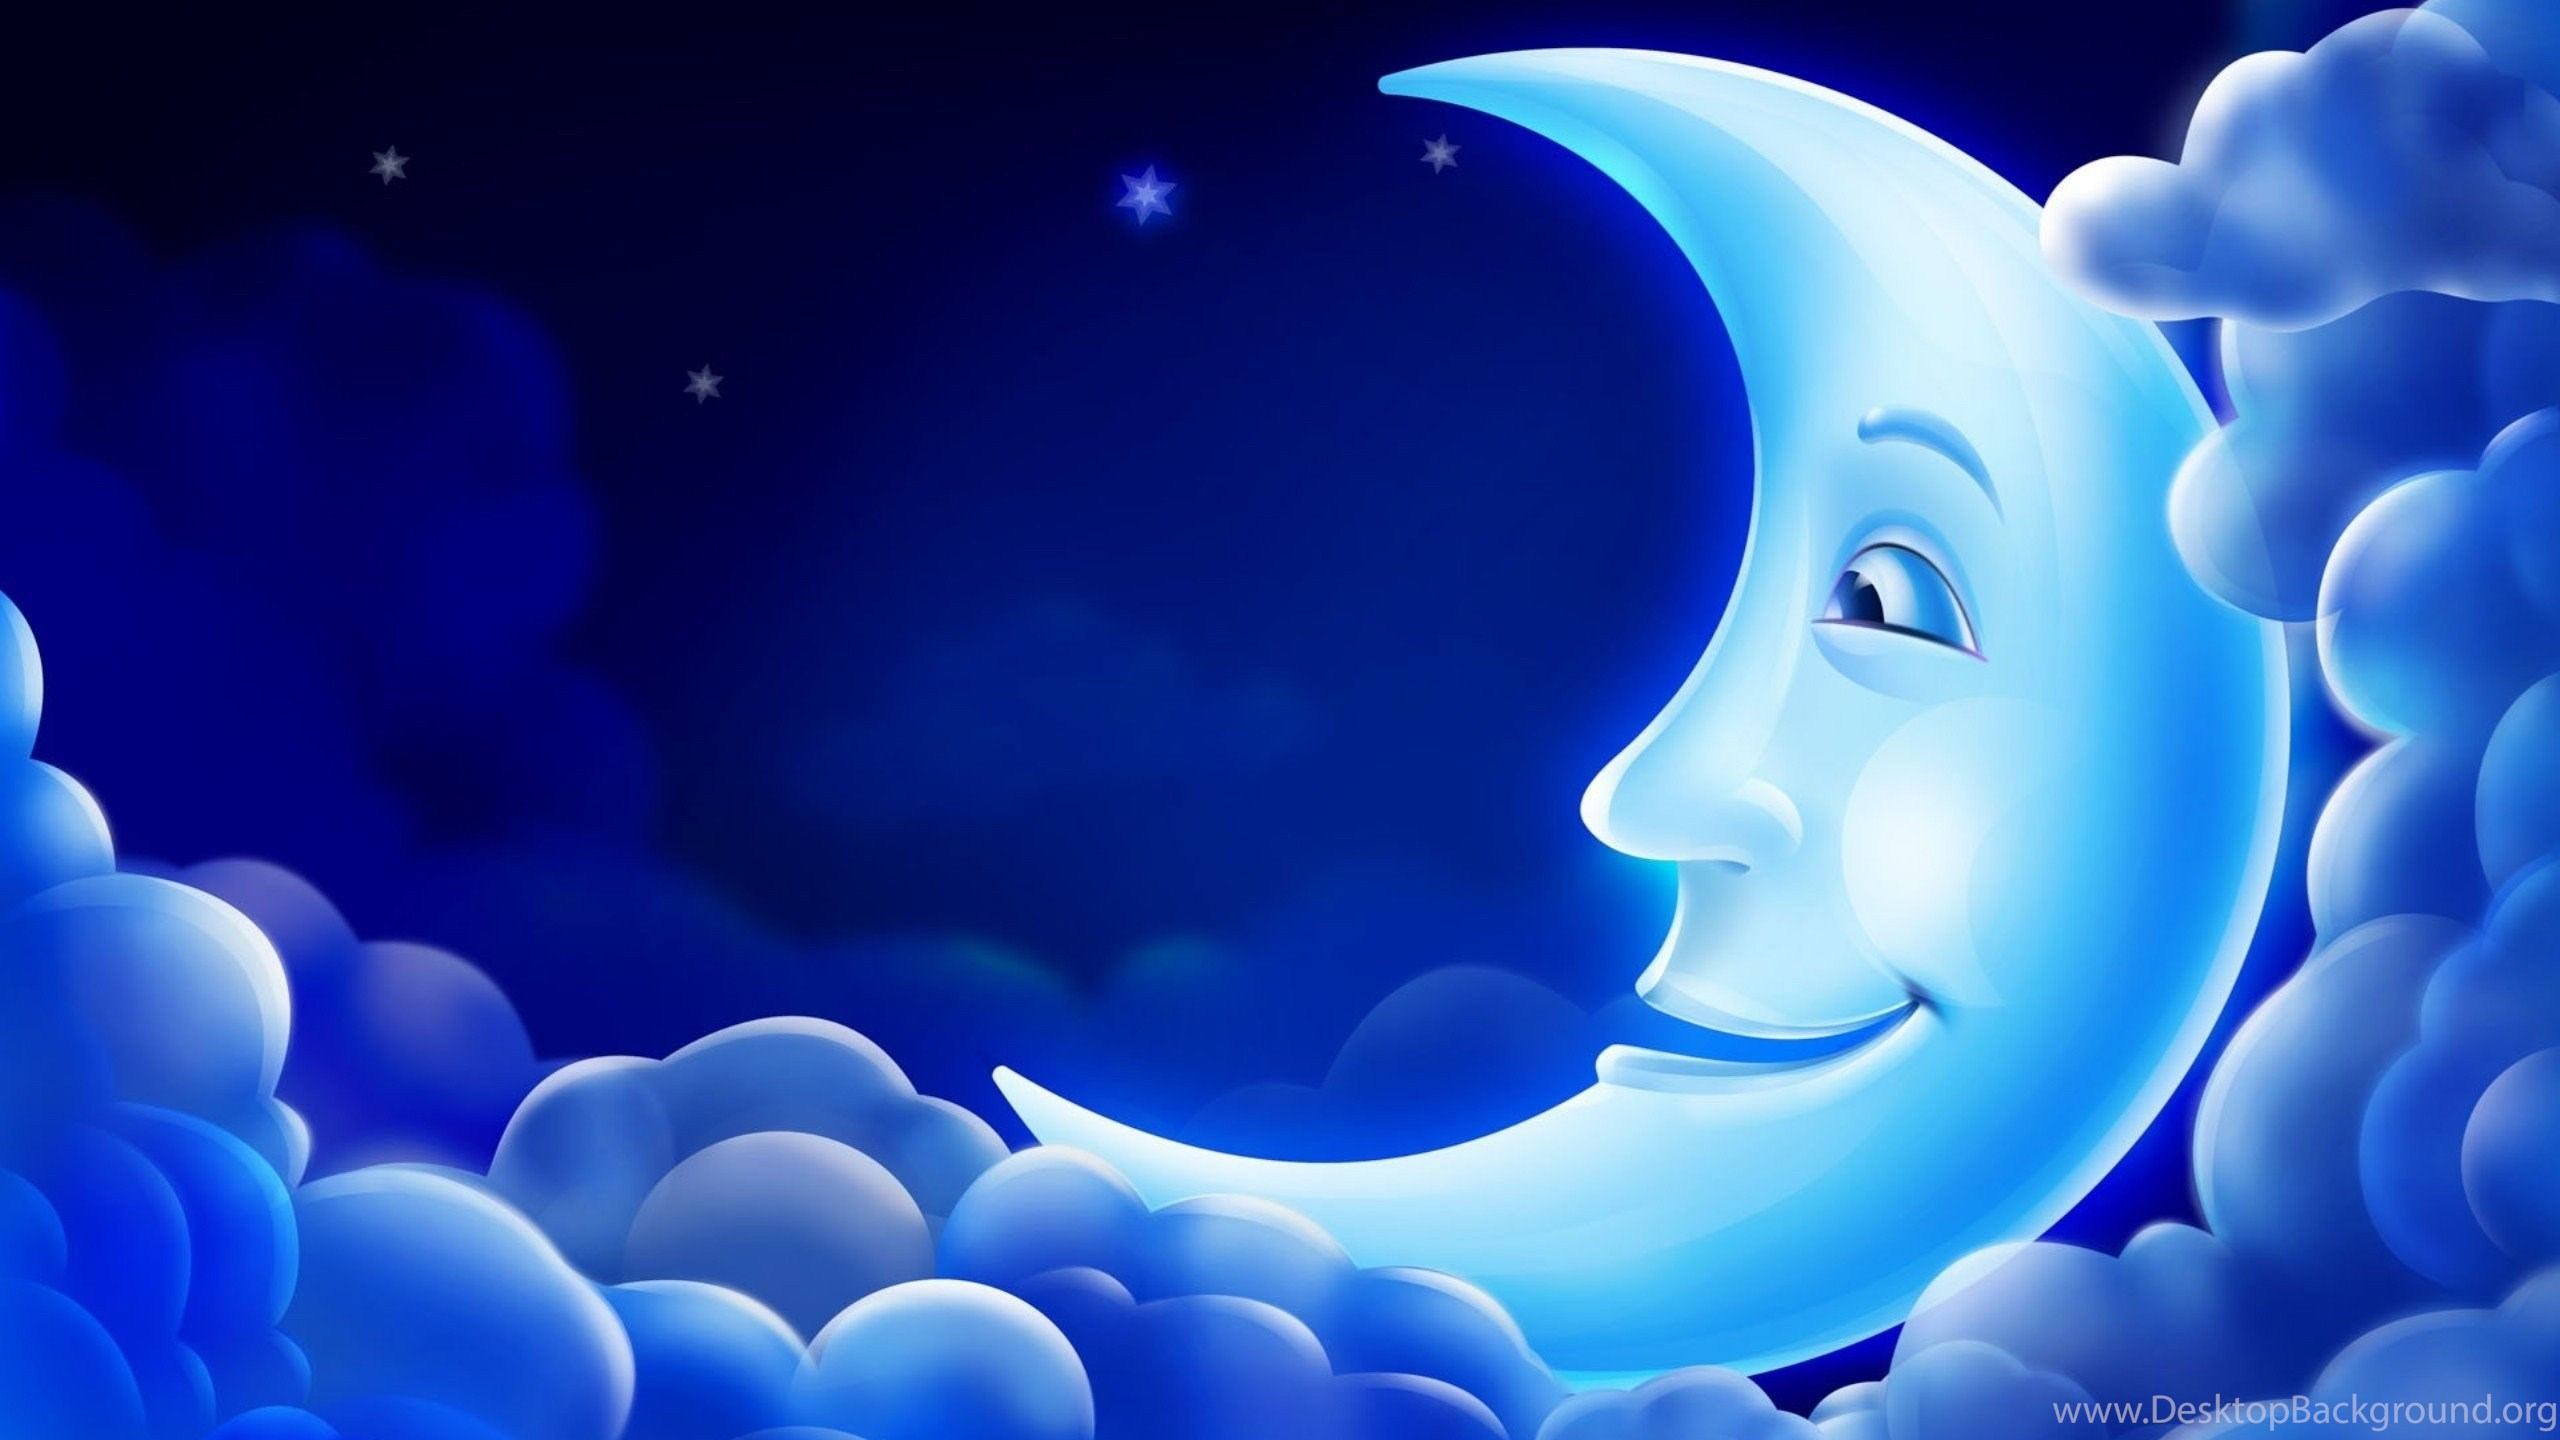 Blue moon good night wallpapers hd download for desktop desktop netbook voltagebd Choice Image